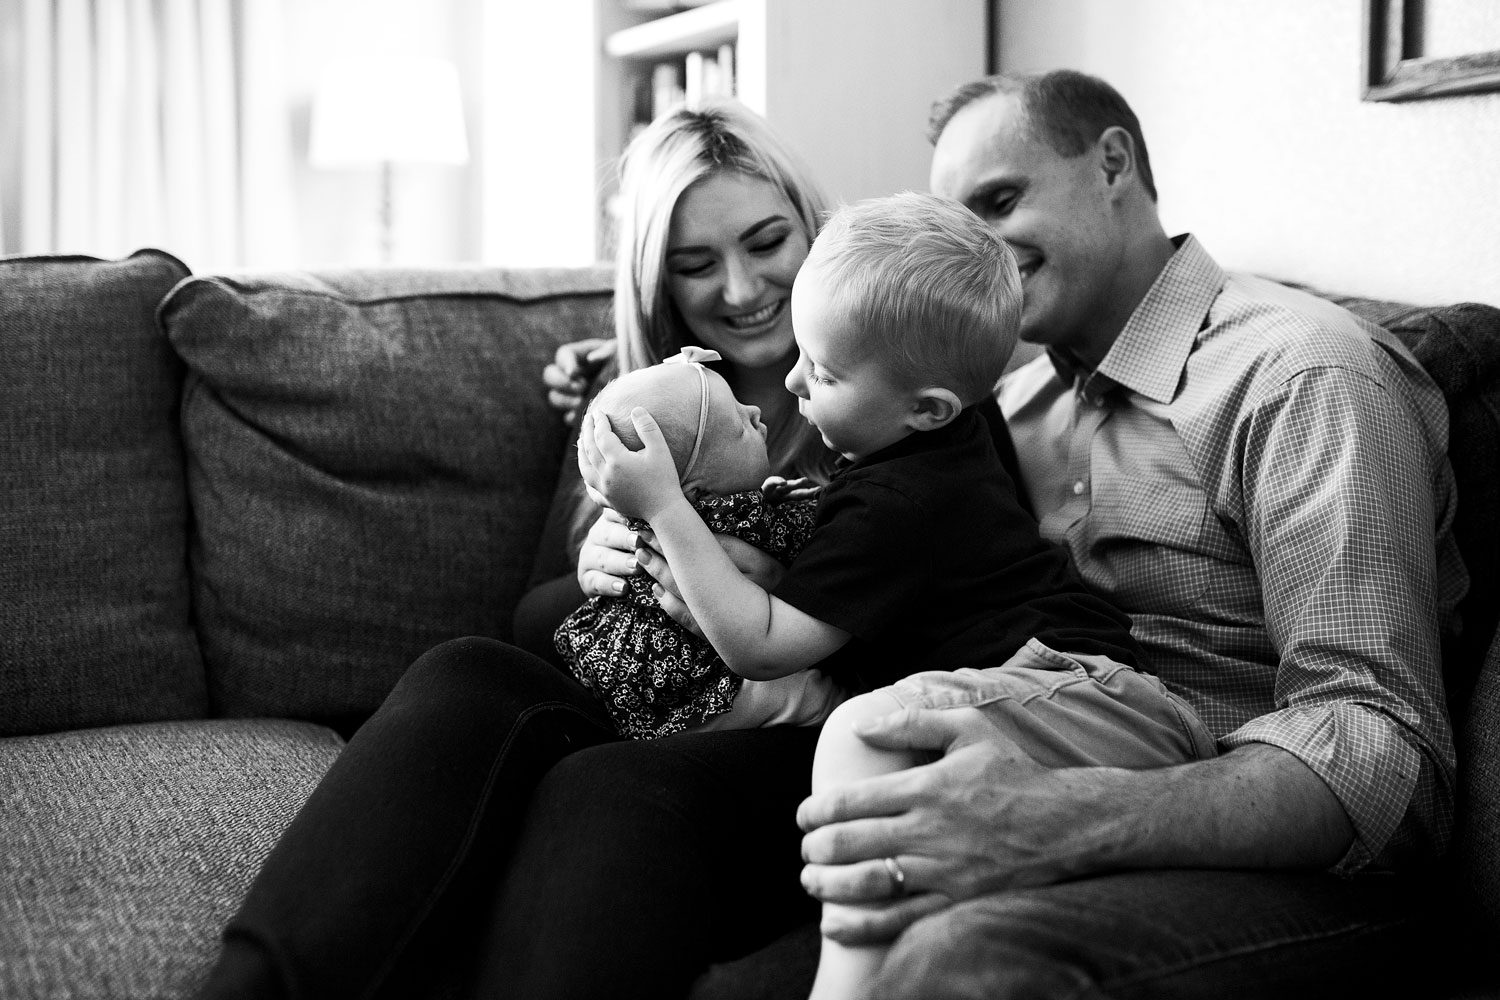 Family of 4, Lifestyle Newborn, Roseville California Photographer, Amy Wright Photography